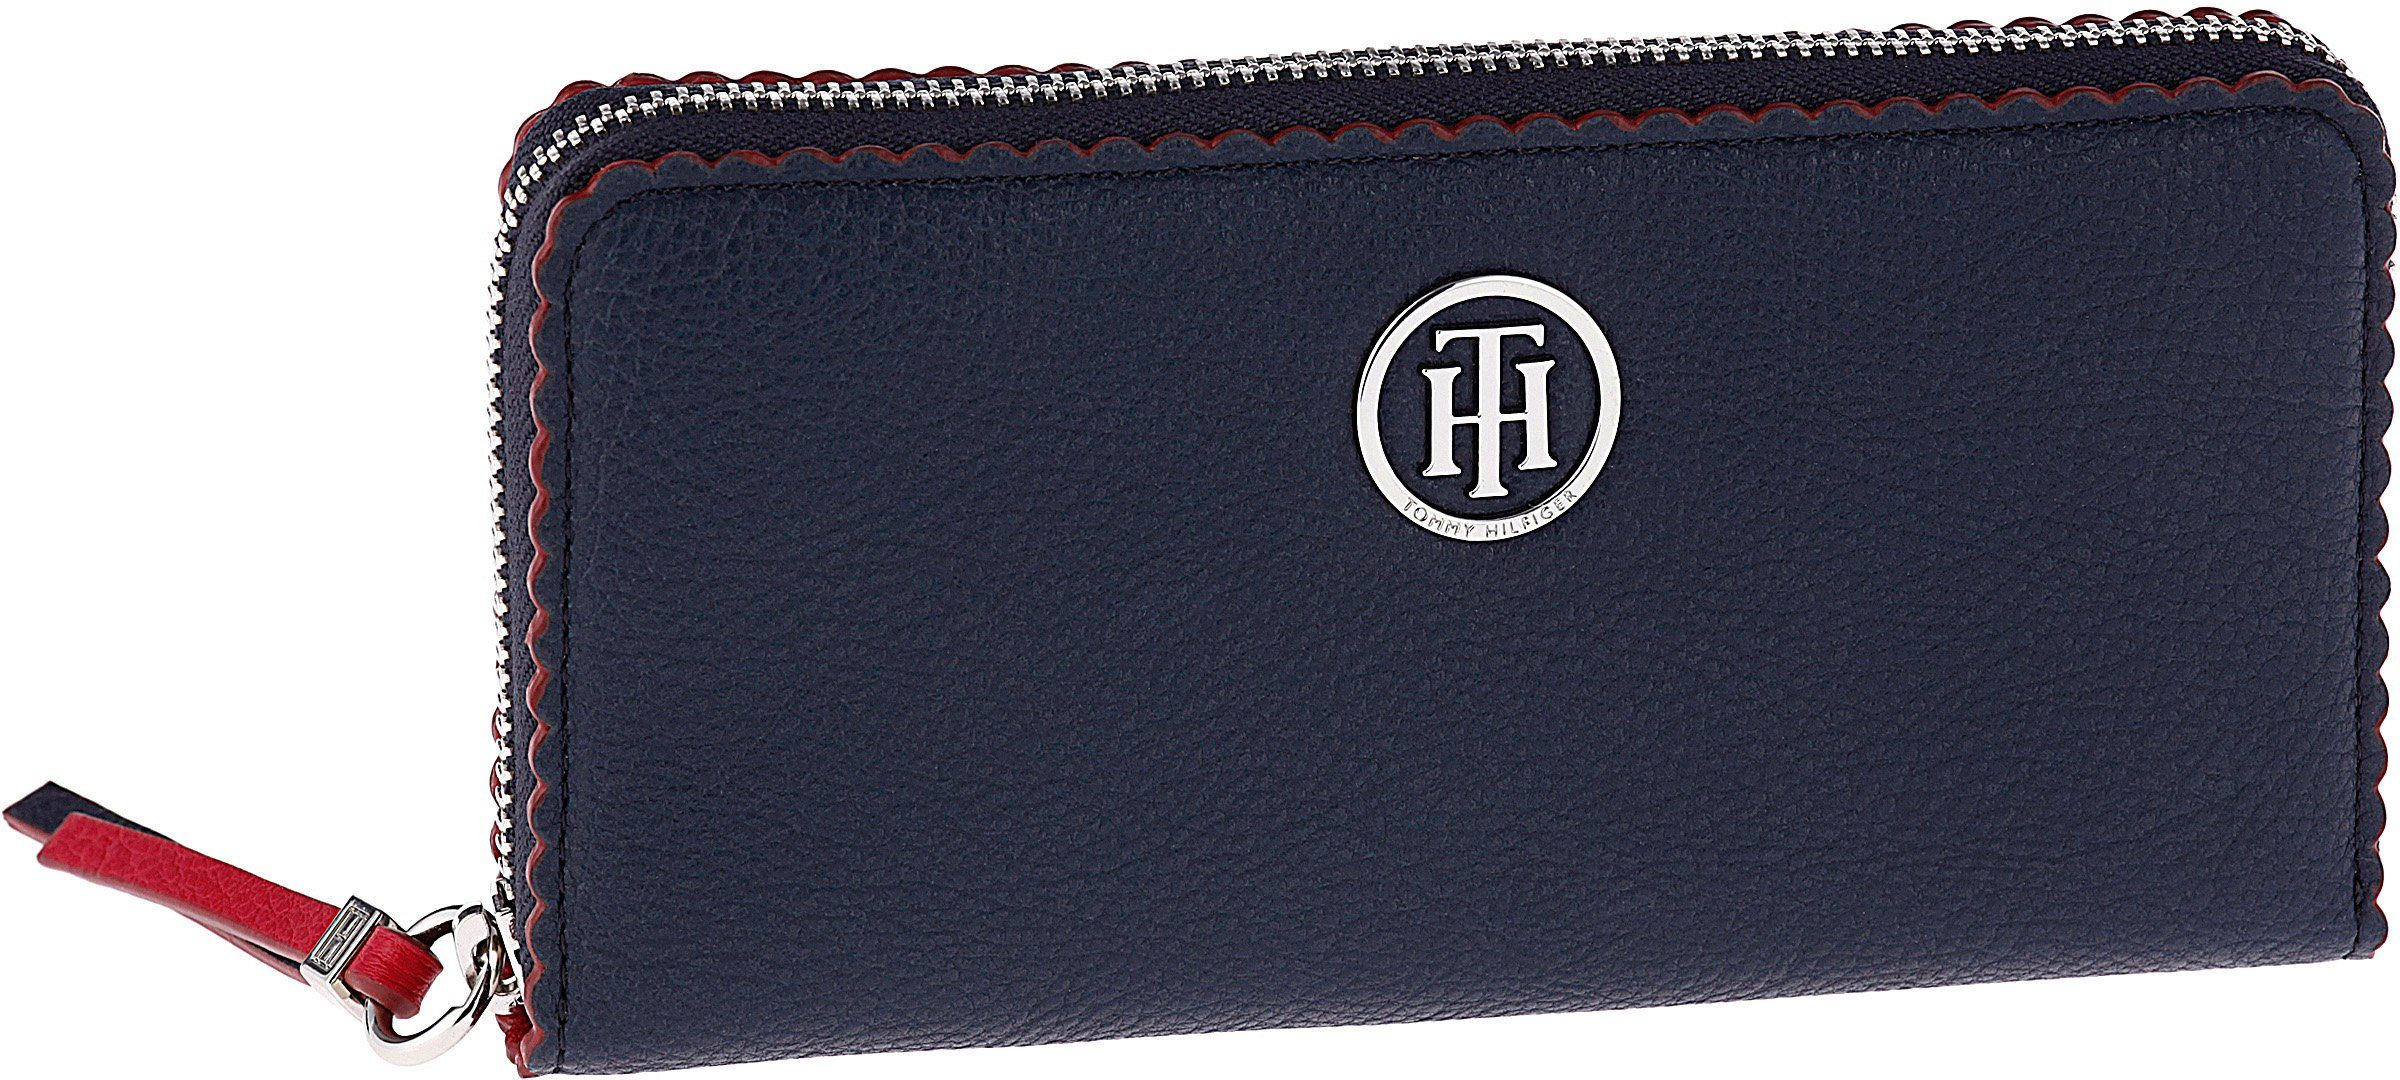 Tommy Hilfiger Geldbörse »Fashion Novelty Large Wallet«